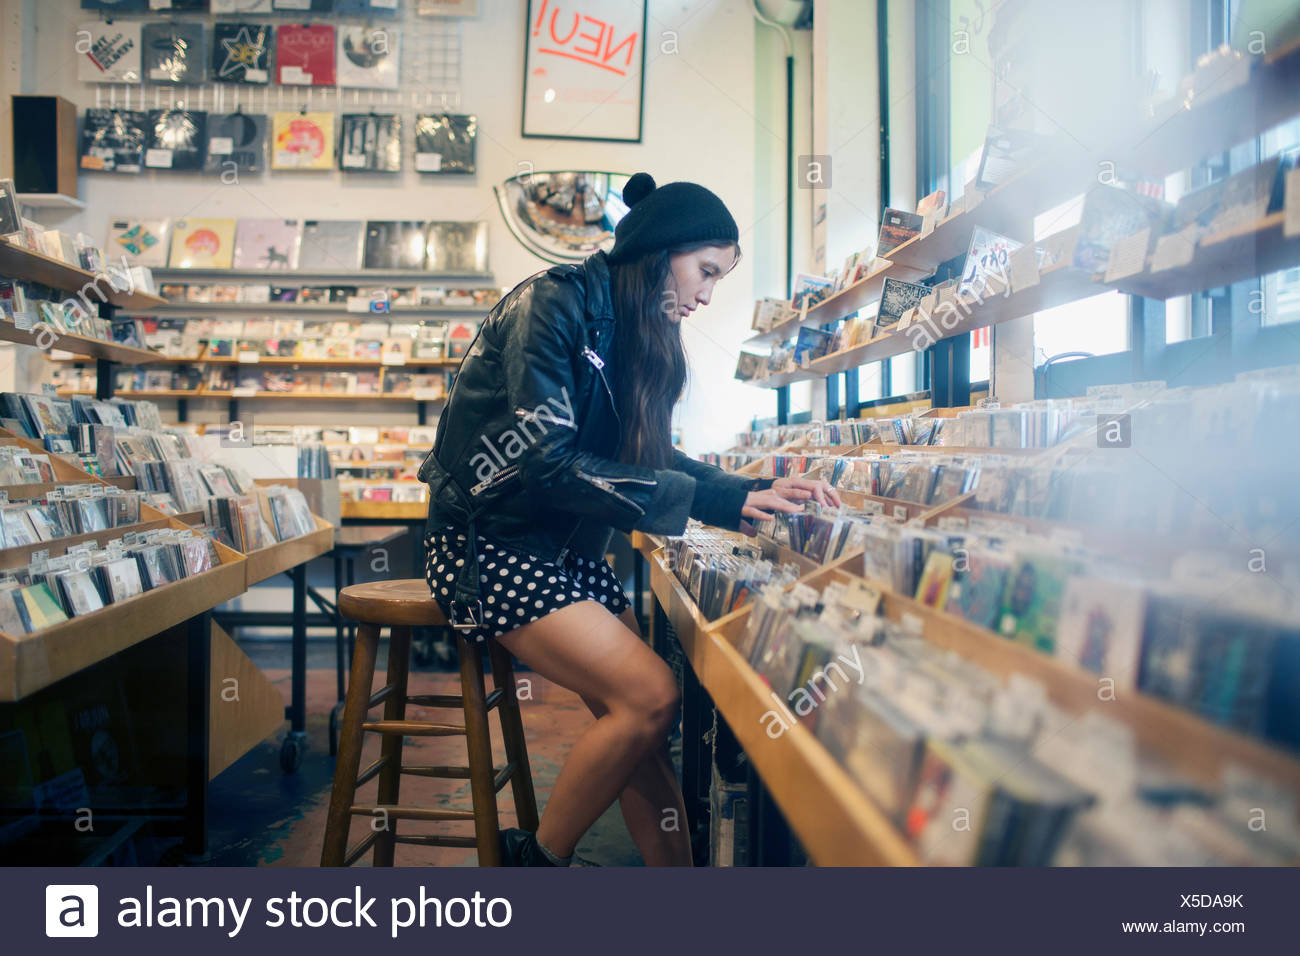 Young woman browsing albums in a record store - Stock Image